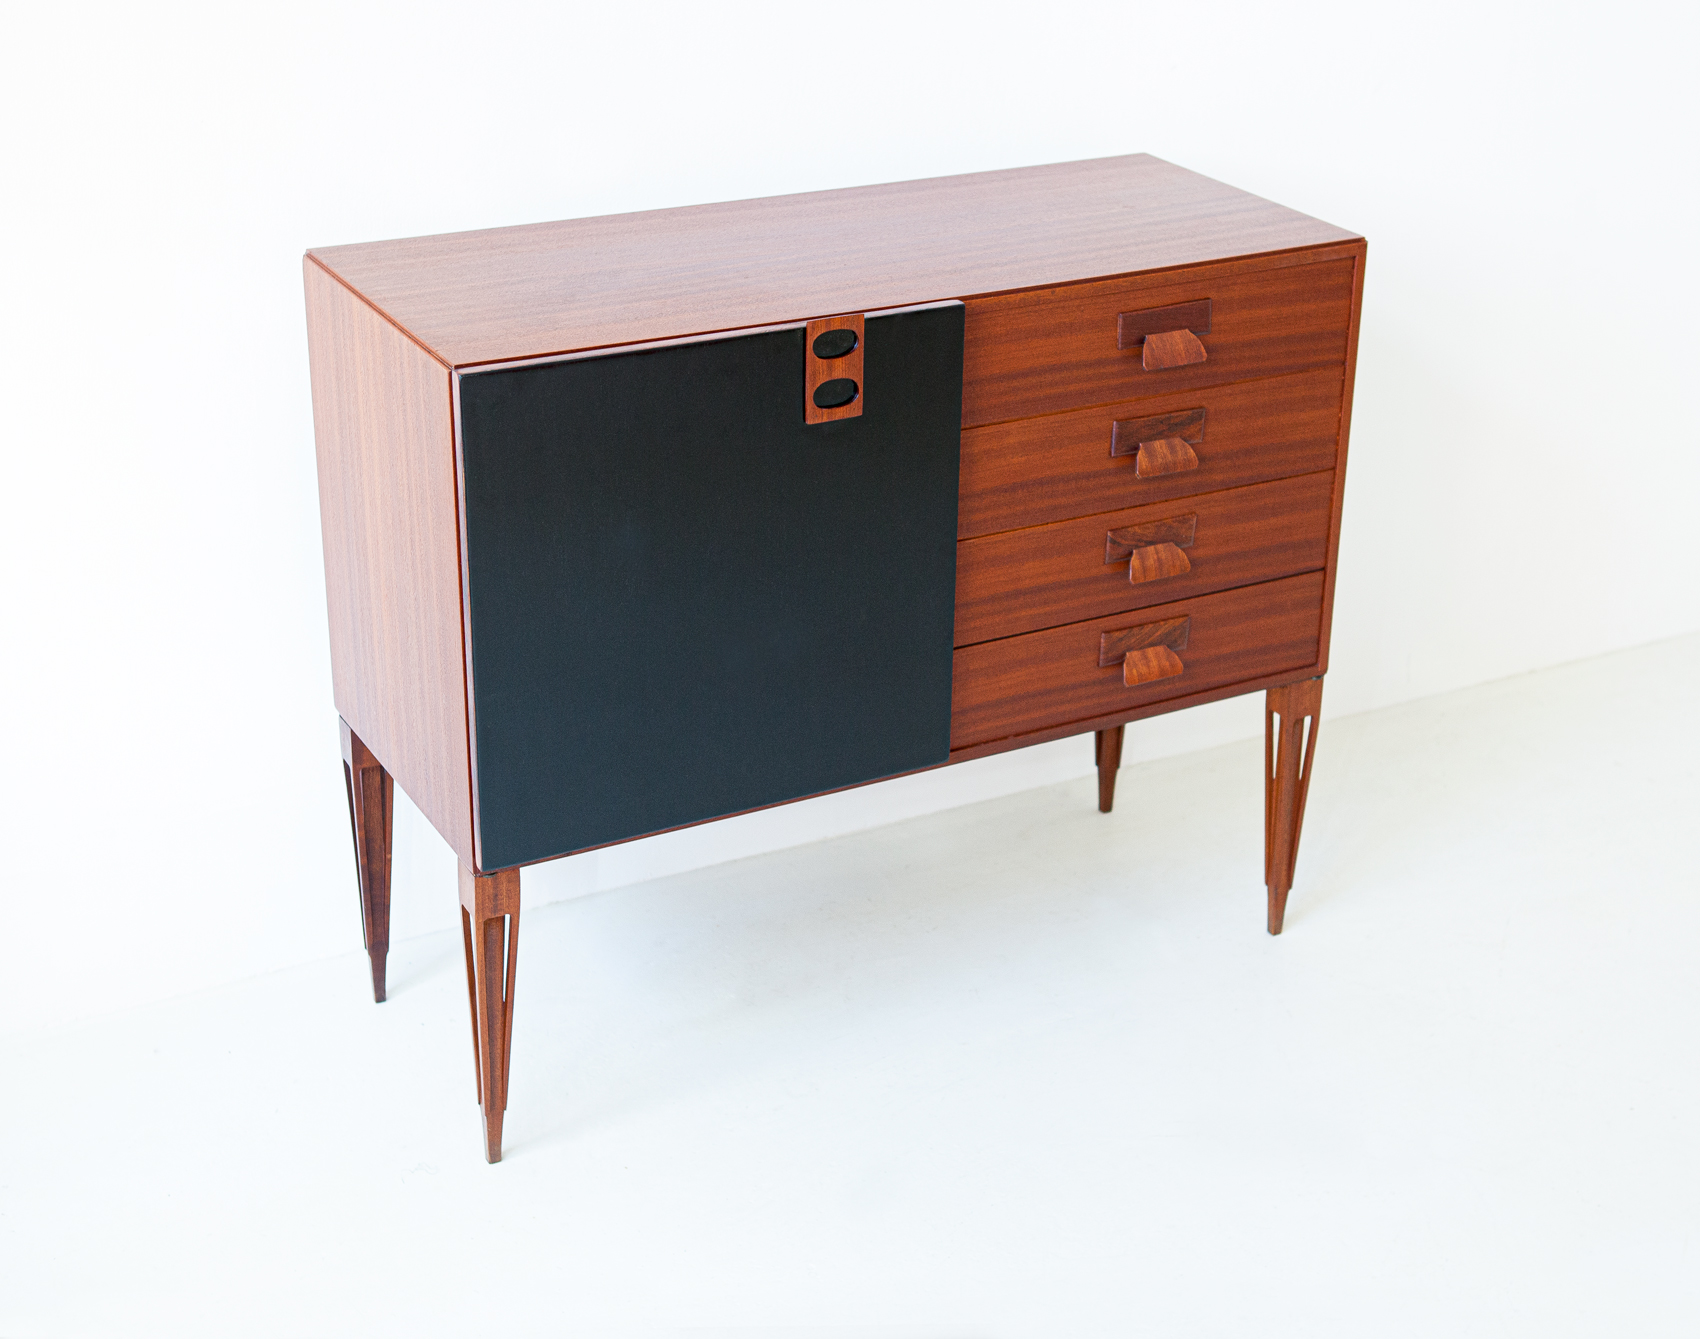 1950s-italian-mahogany-sideboard-with-drawers-by-fratelli-proserpio-3-st121